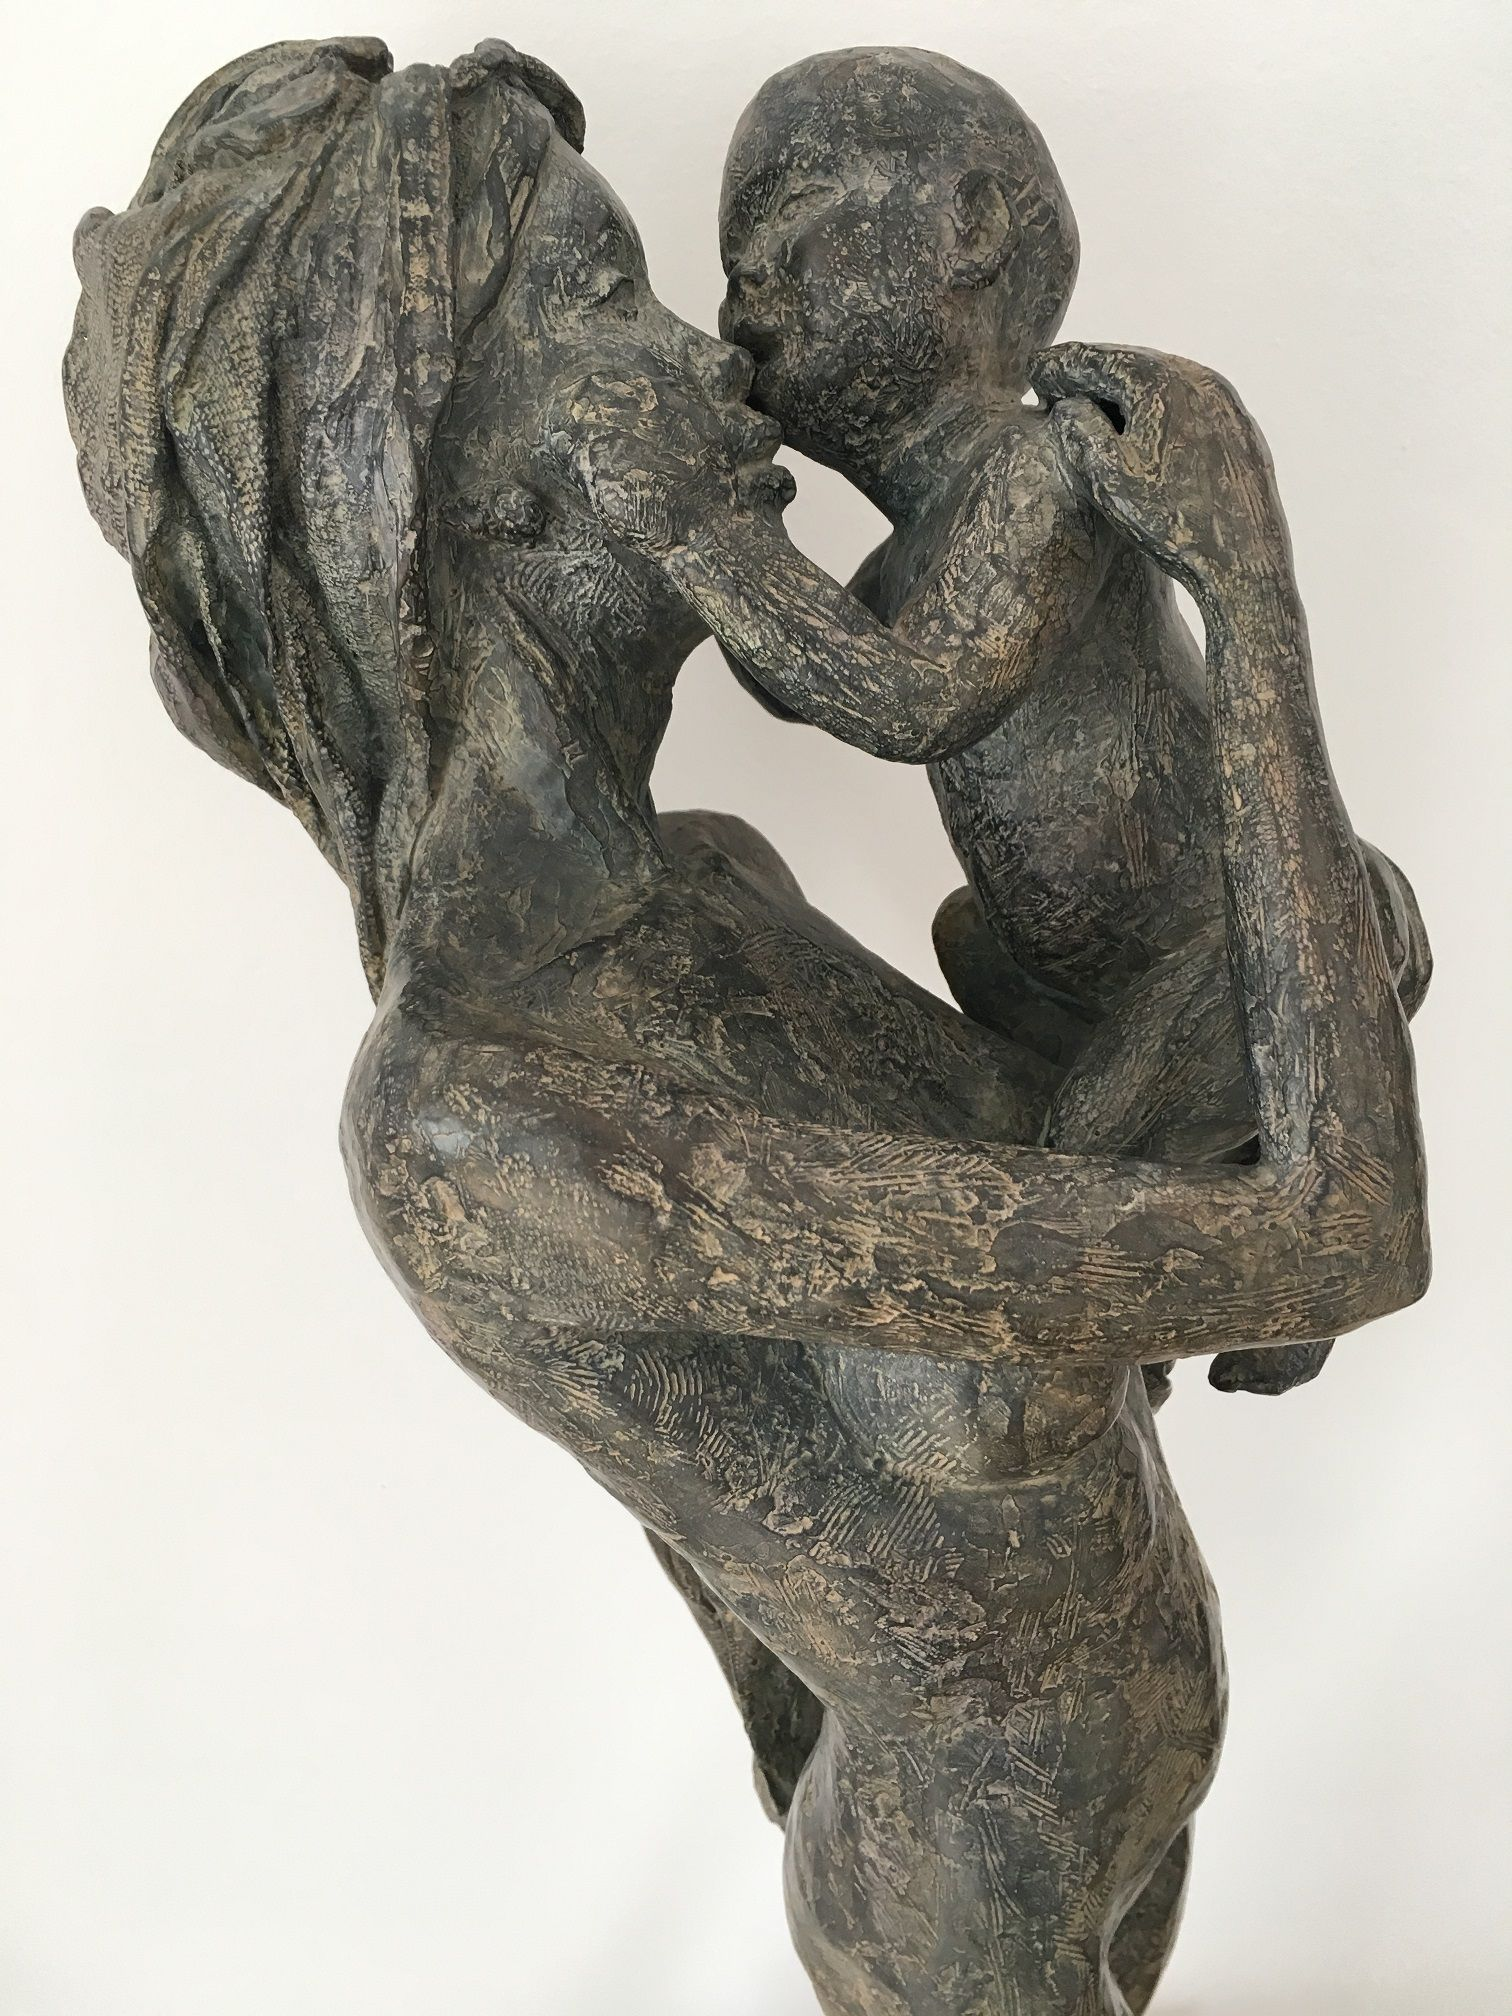 Woman with Child,Marine de Soos,Sculpture, detail 3